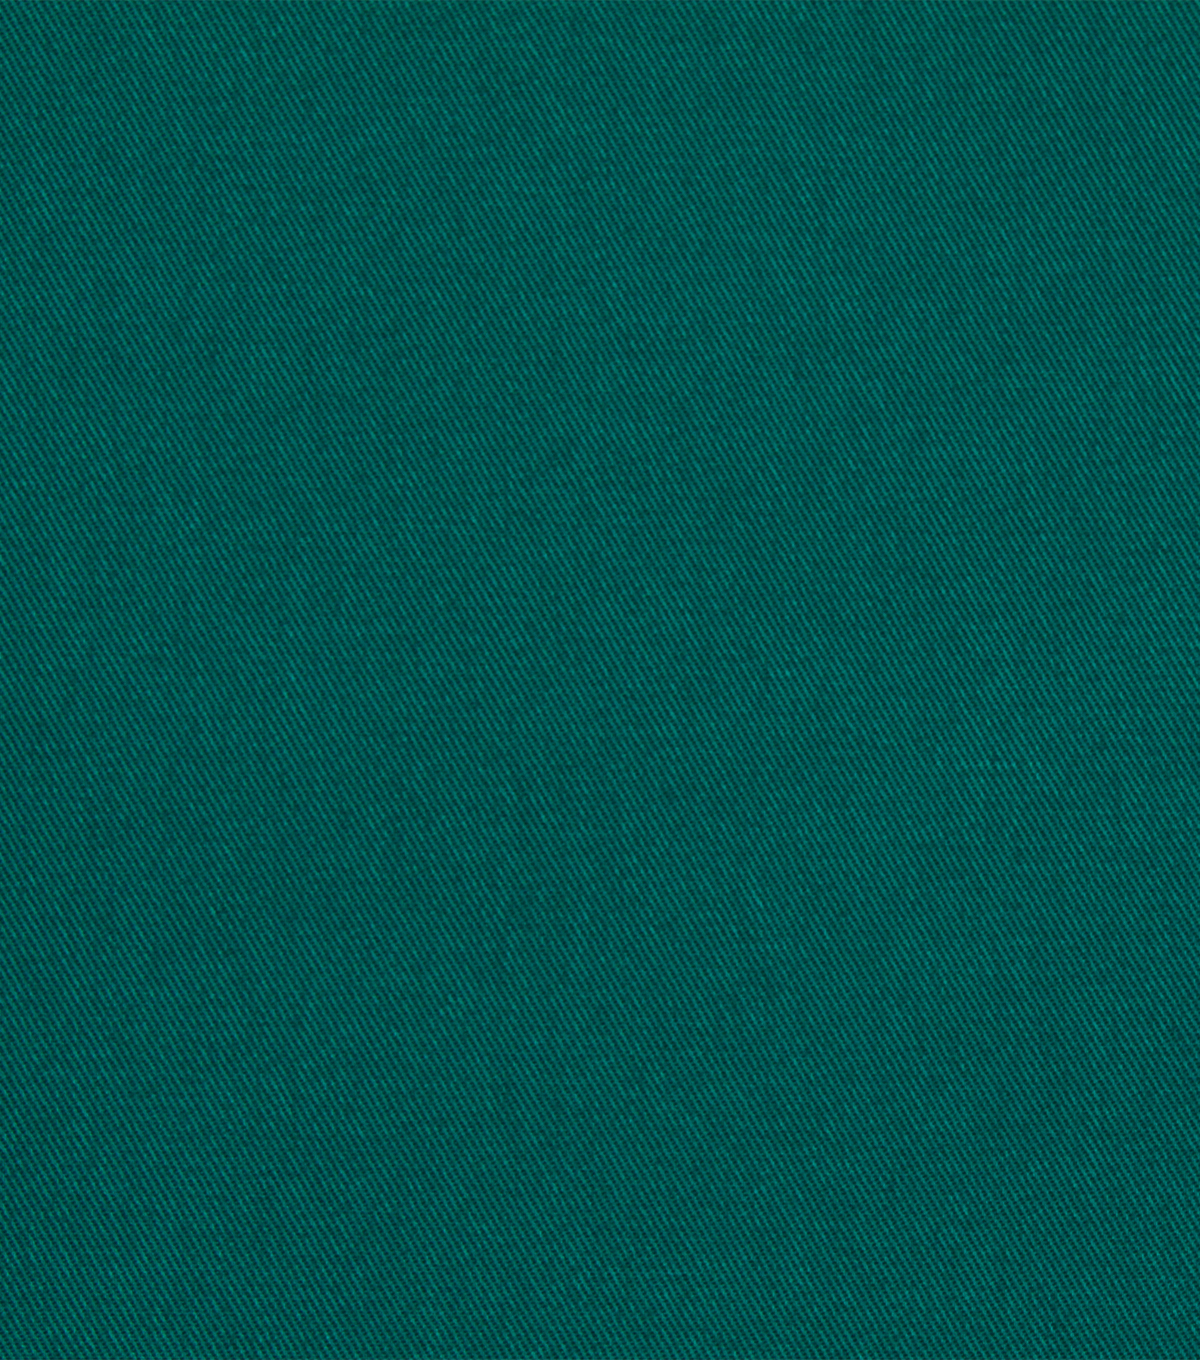 "Home Decor 8""x8"" Fabric Swatch-Robert Allen Success Teal"